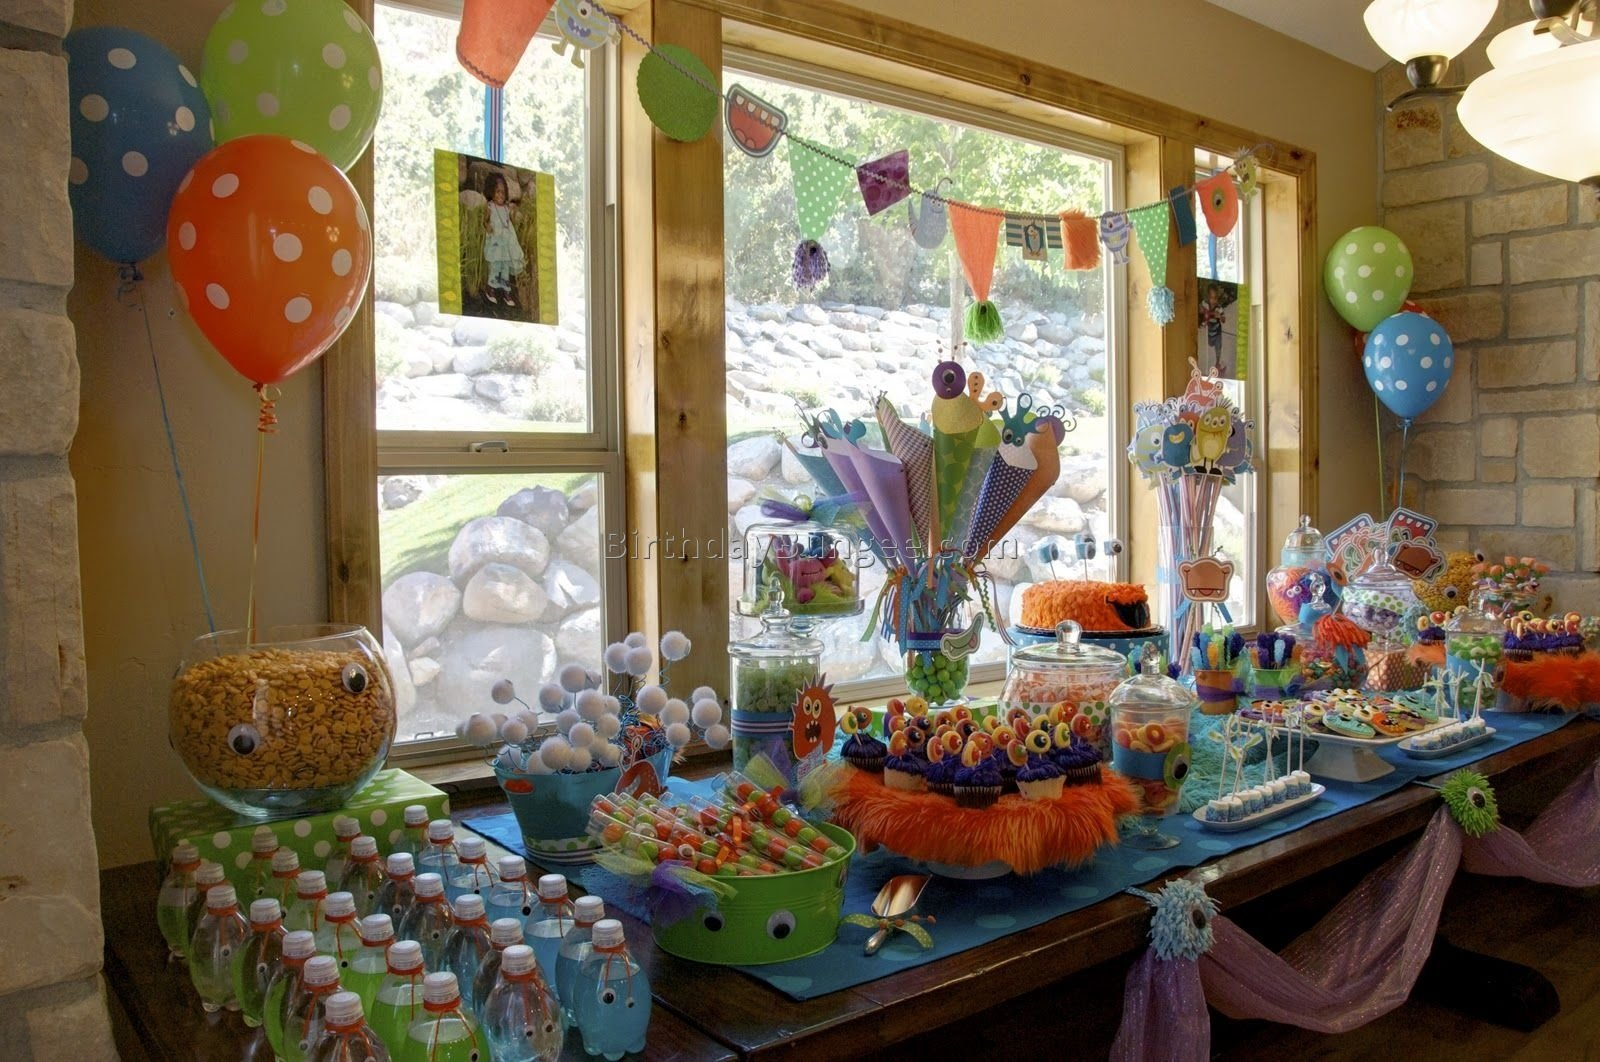 10 Nice Birthday Ideas For 4 Year Old Boy Party Home